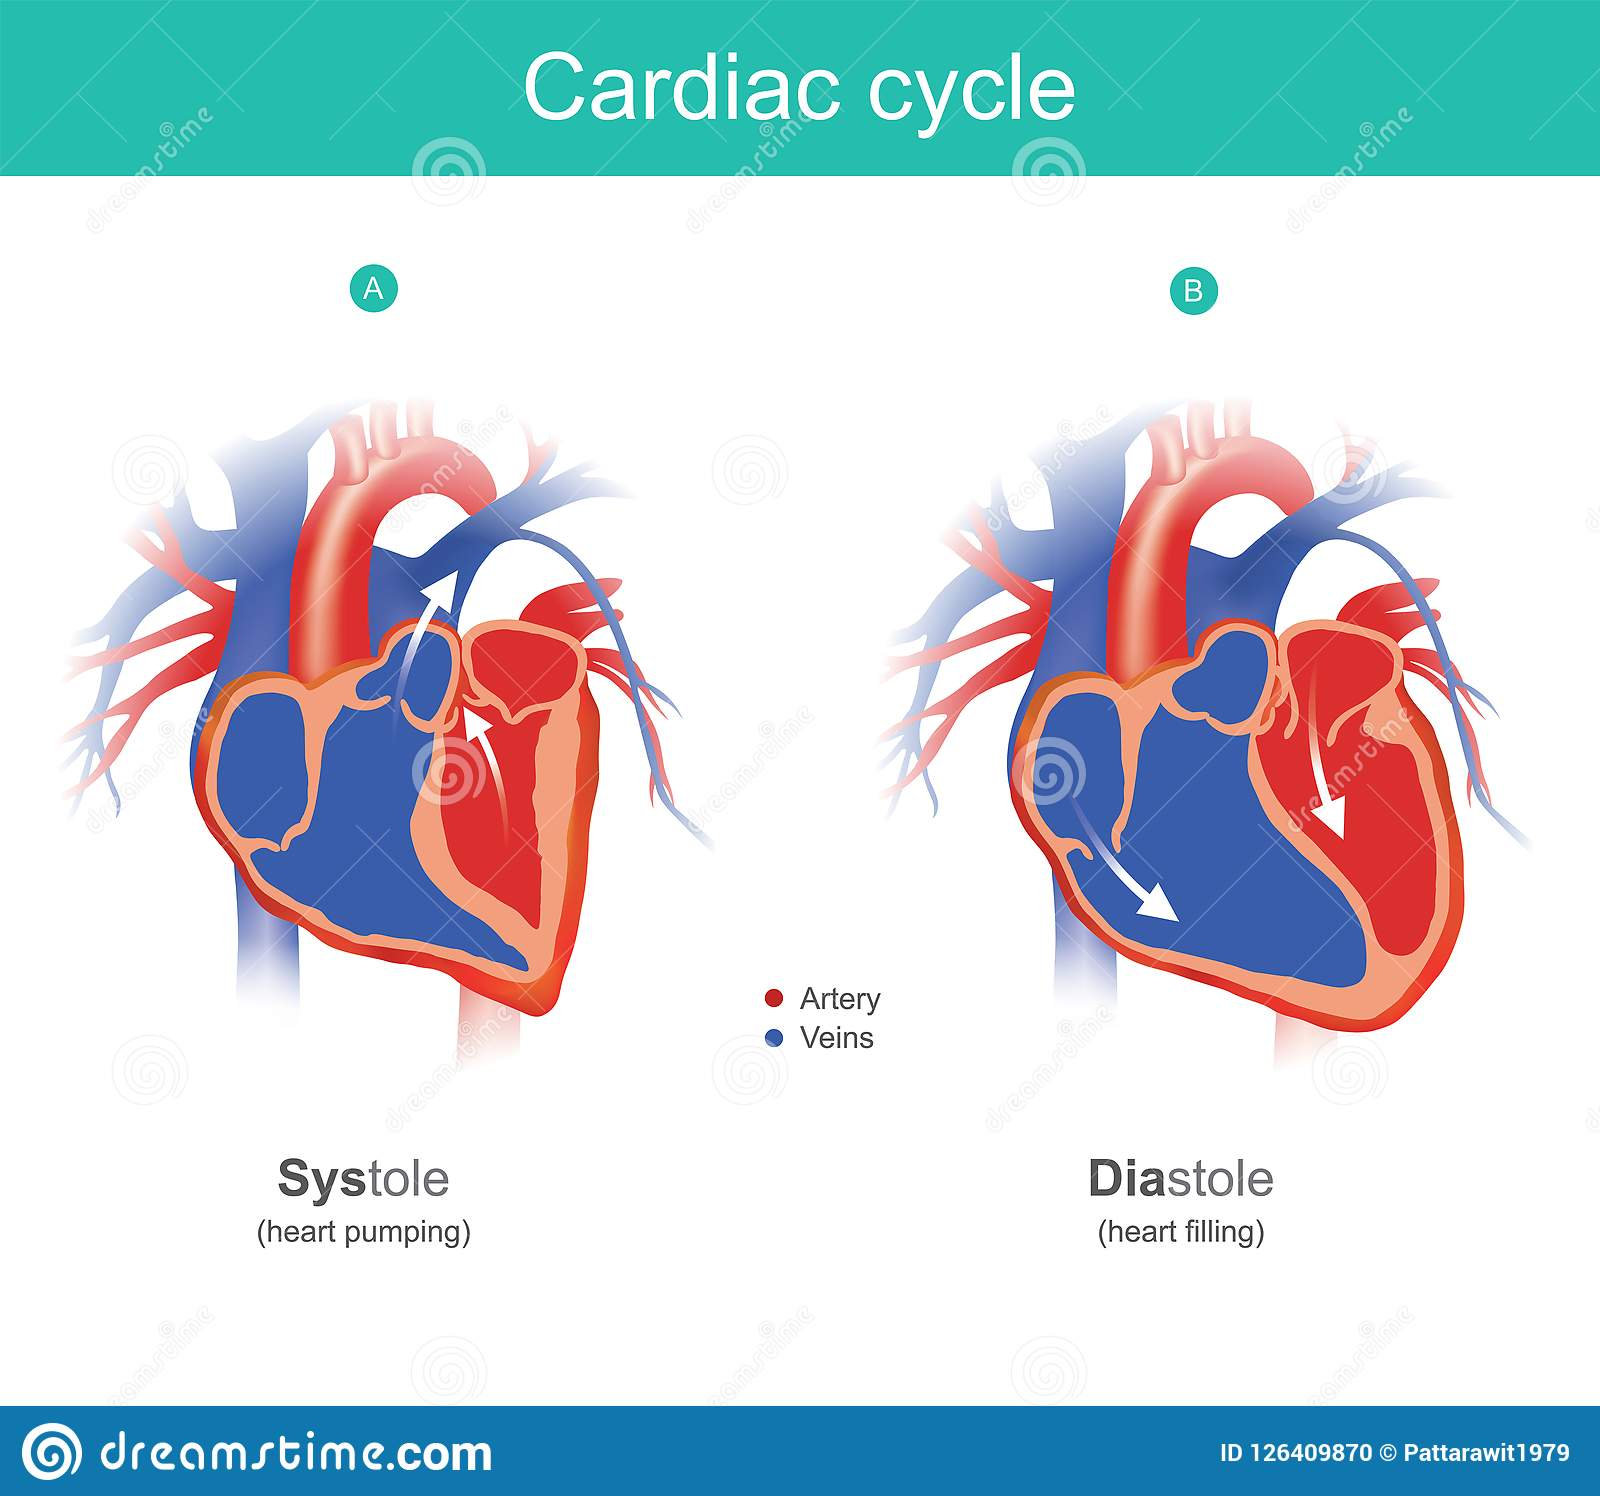 Cardiac Cycle Infographic The Heart Is The Organ Of The